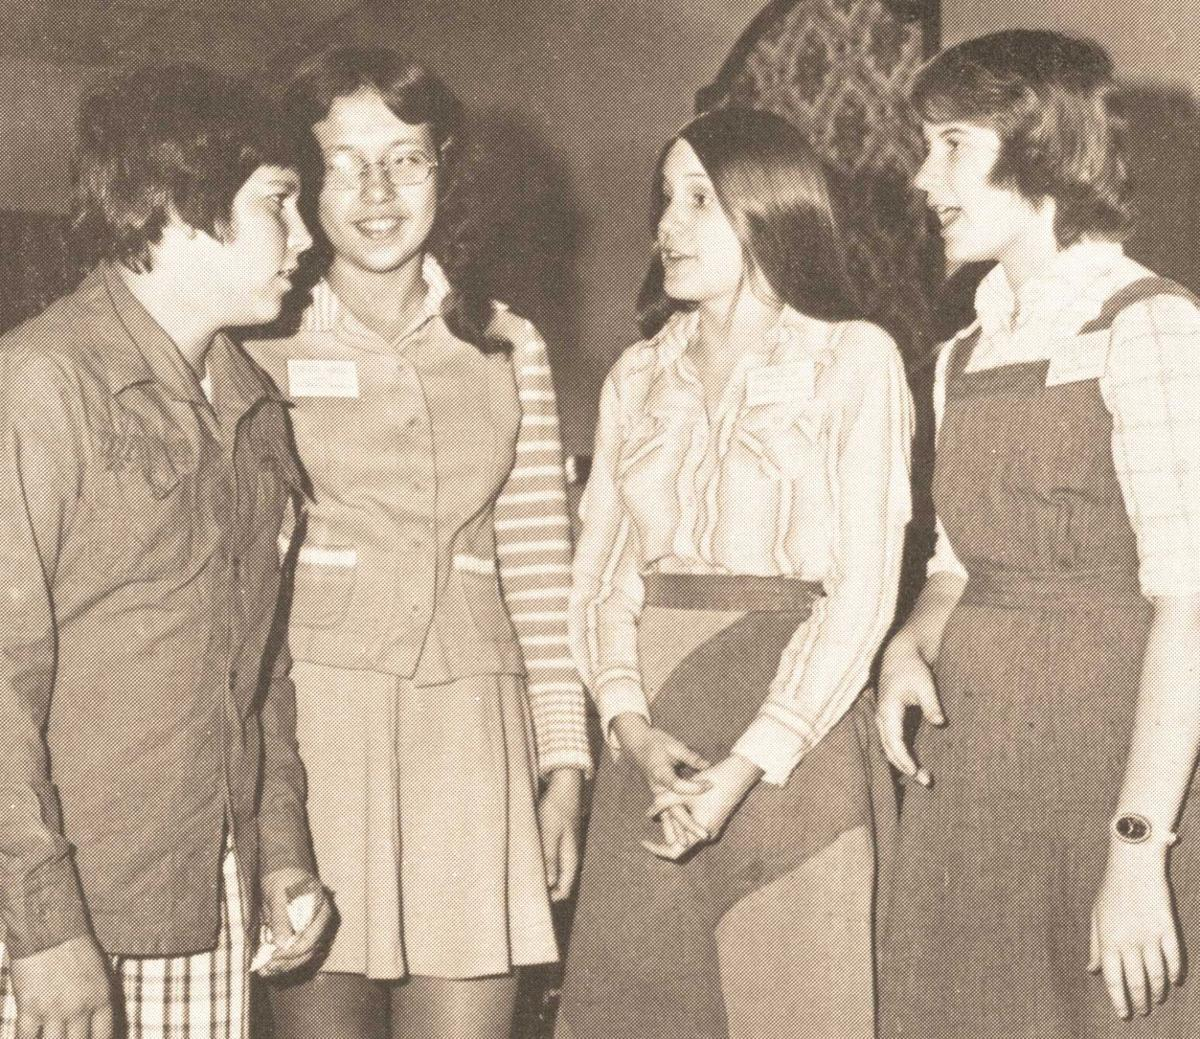 Out of the Archives: Church marked milestone in 1976